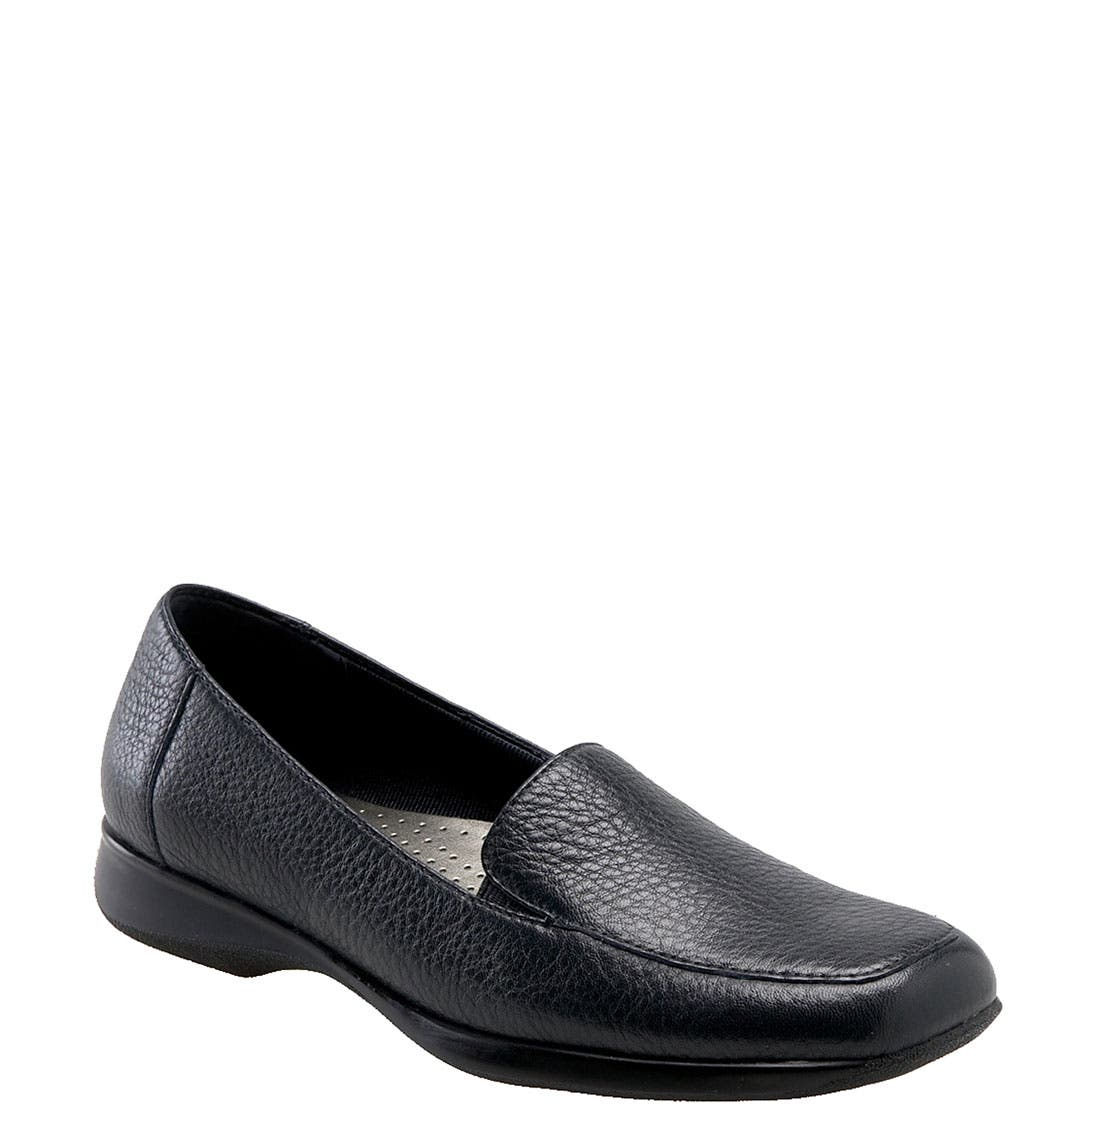 TROTTERS, 'Jenn' Loafer, Main thumbnail 1, color, NAVY SOFT TUMBLED LEATHER